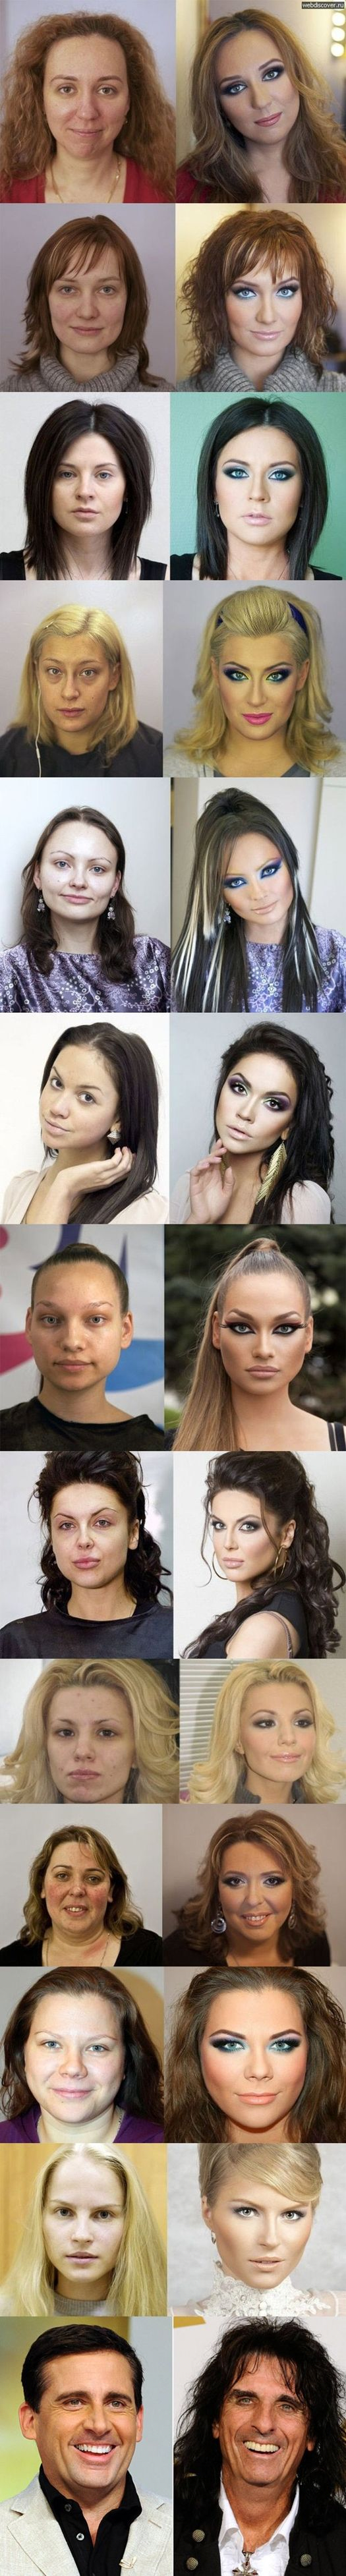 celebrities before makeup. Go all the way to the bottom!!!